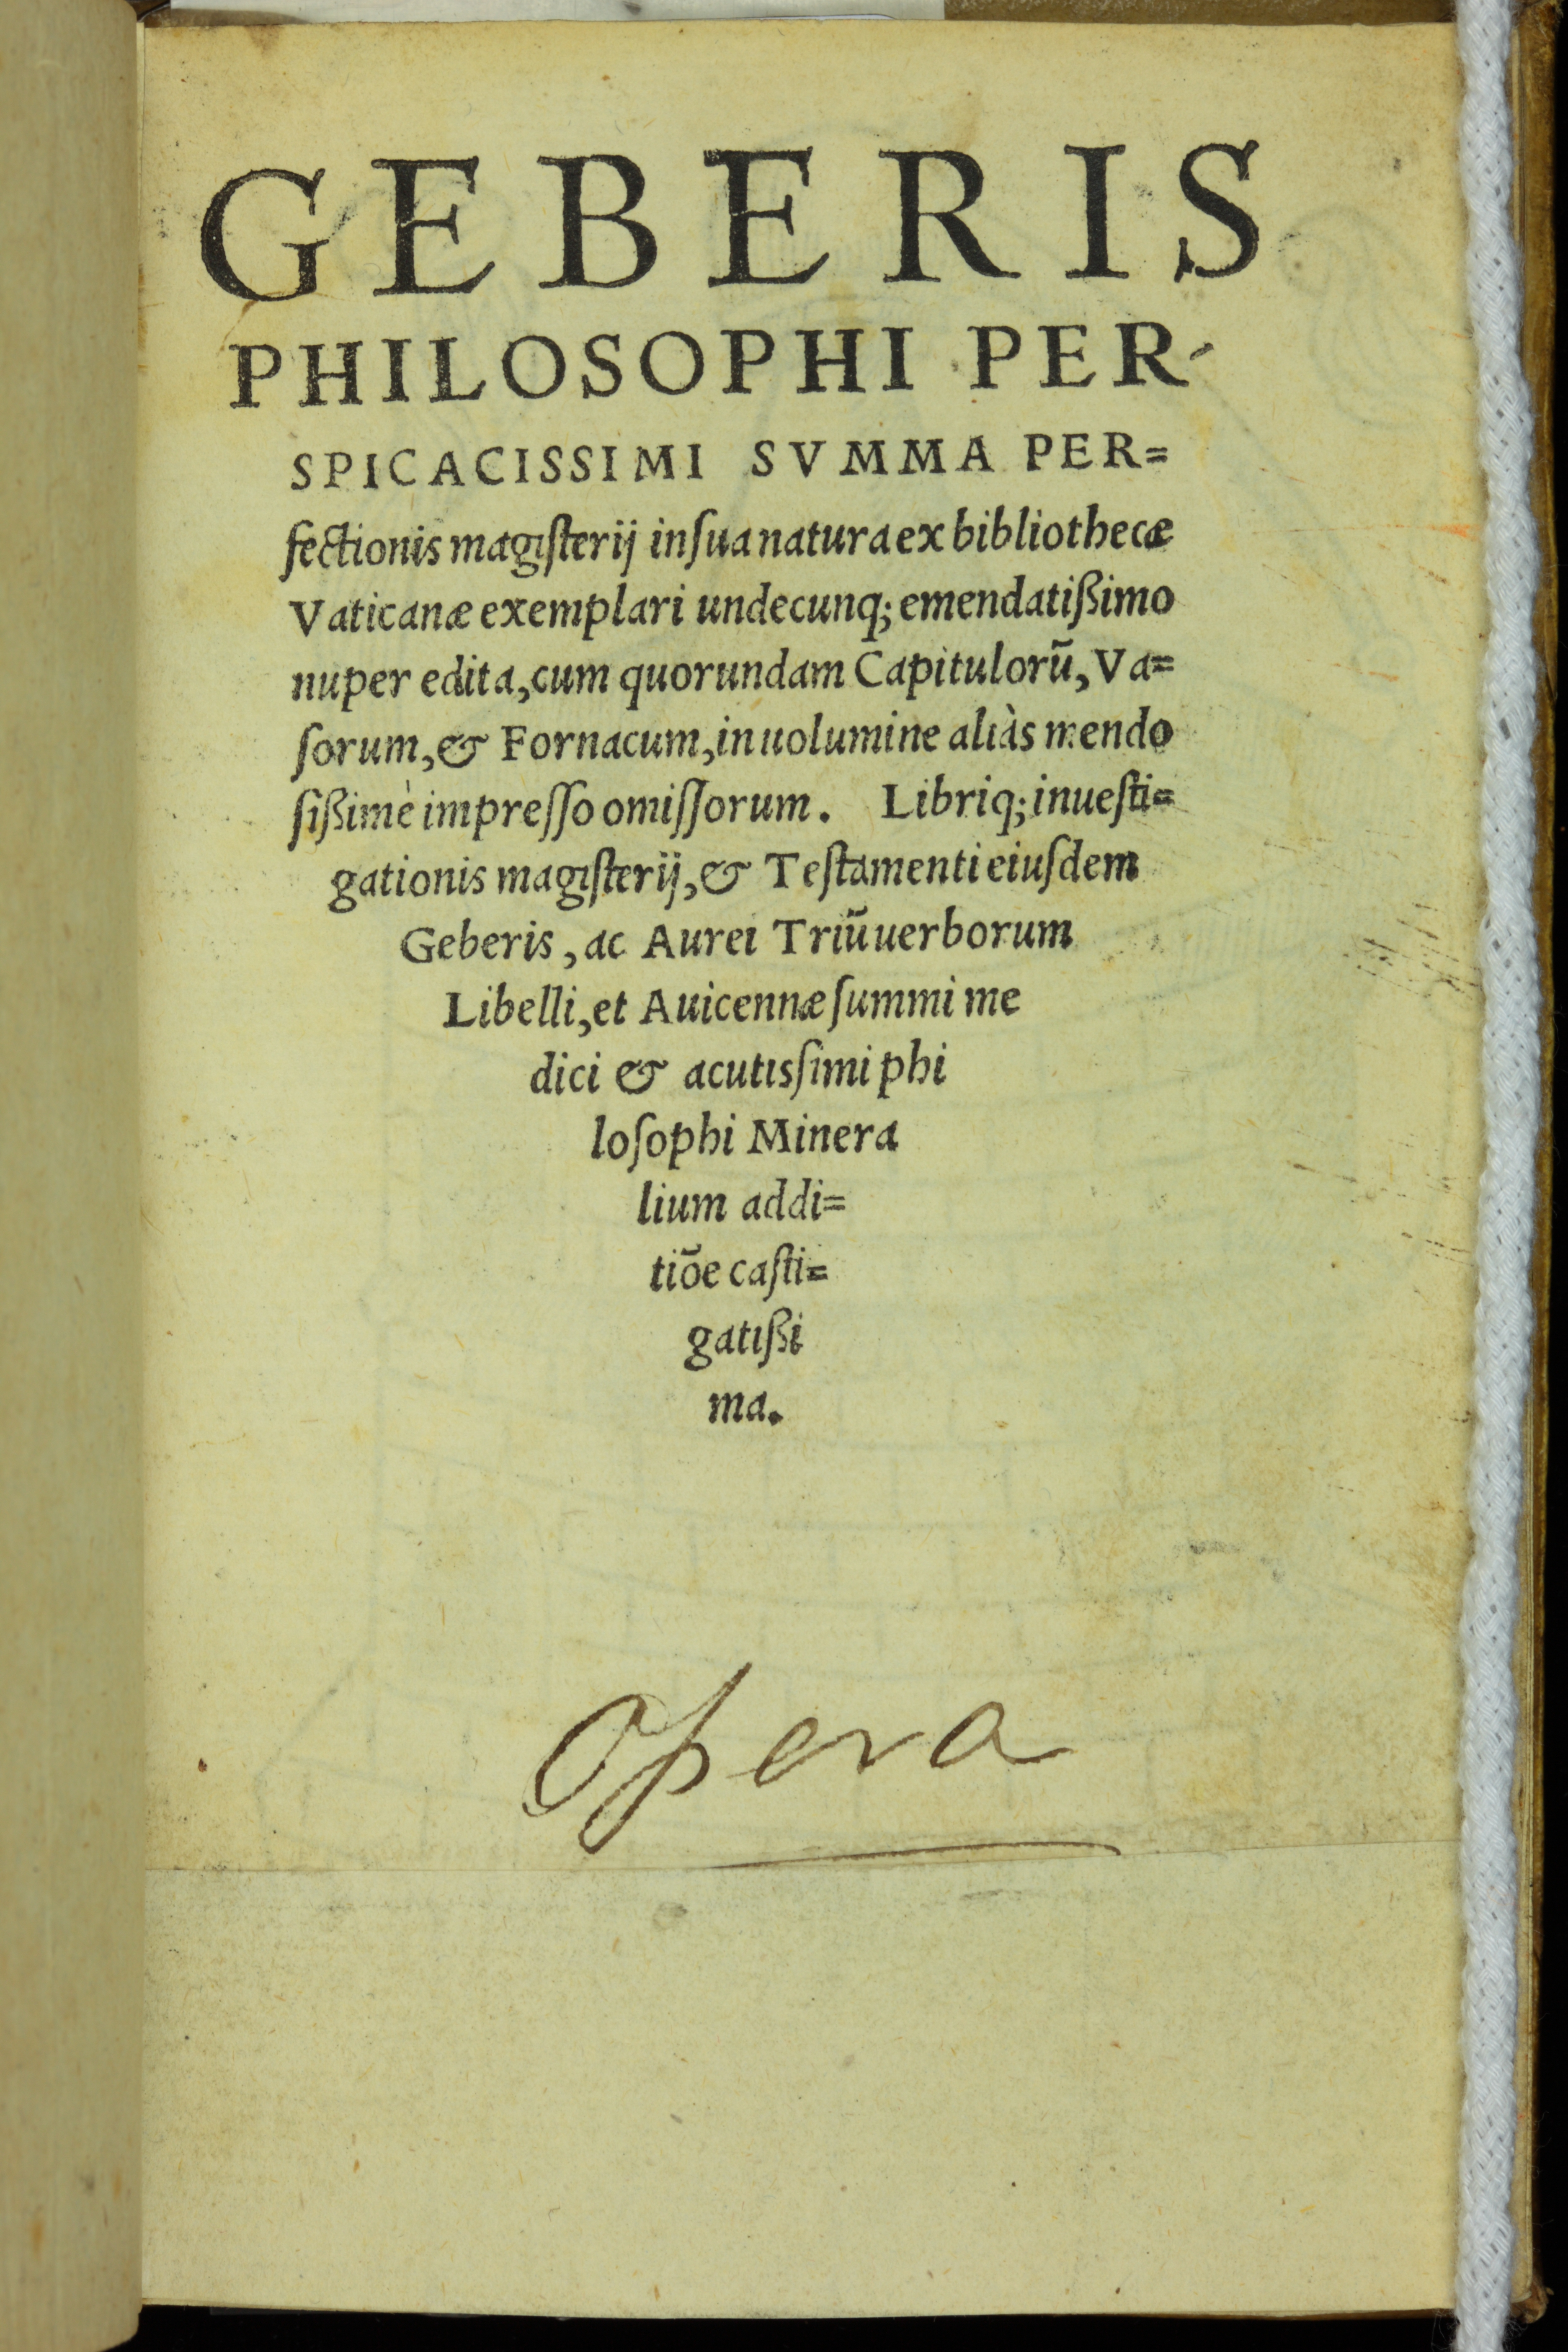 File:Geberis philosophi perspicacissimi 1542 Title page AQ4 (2).jpg